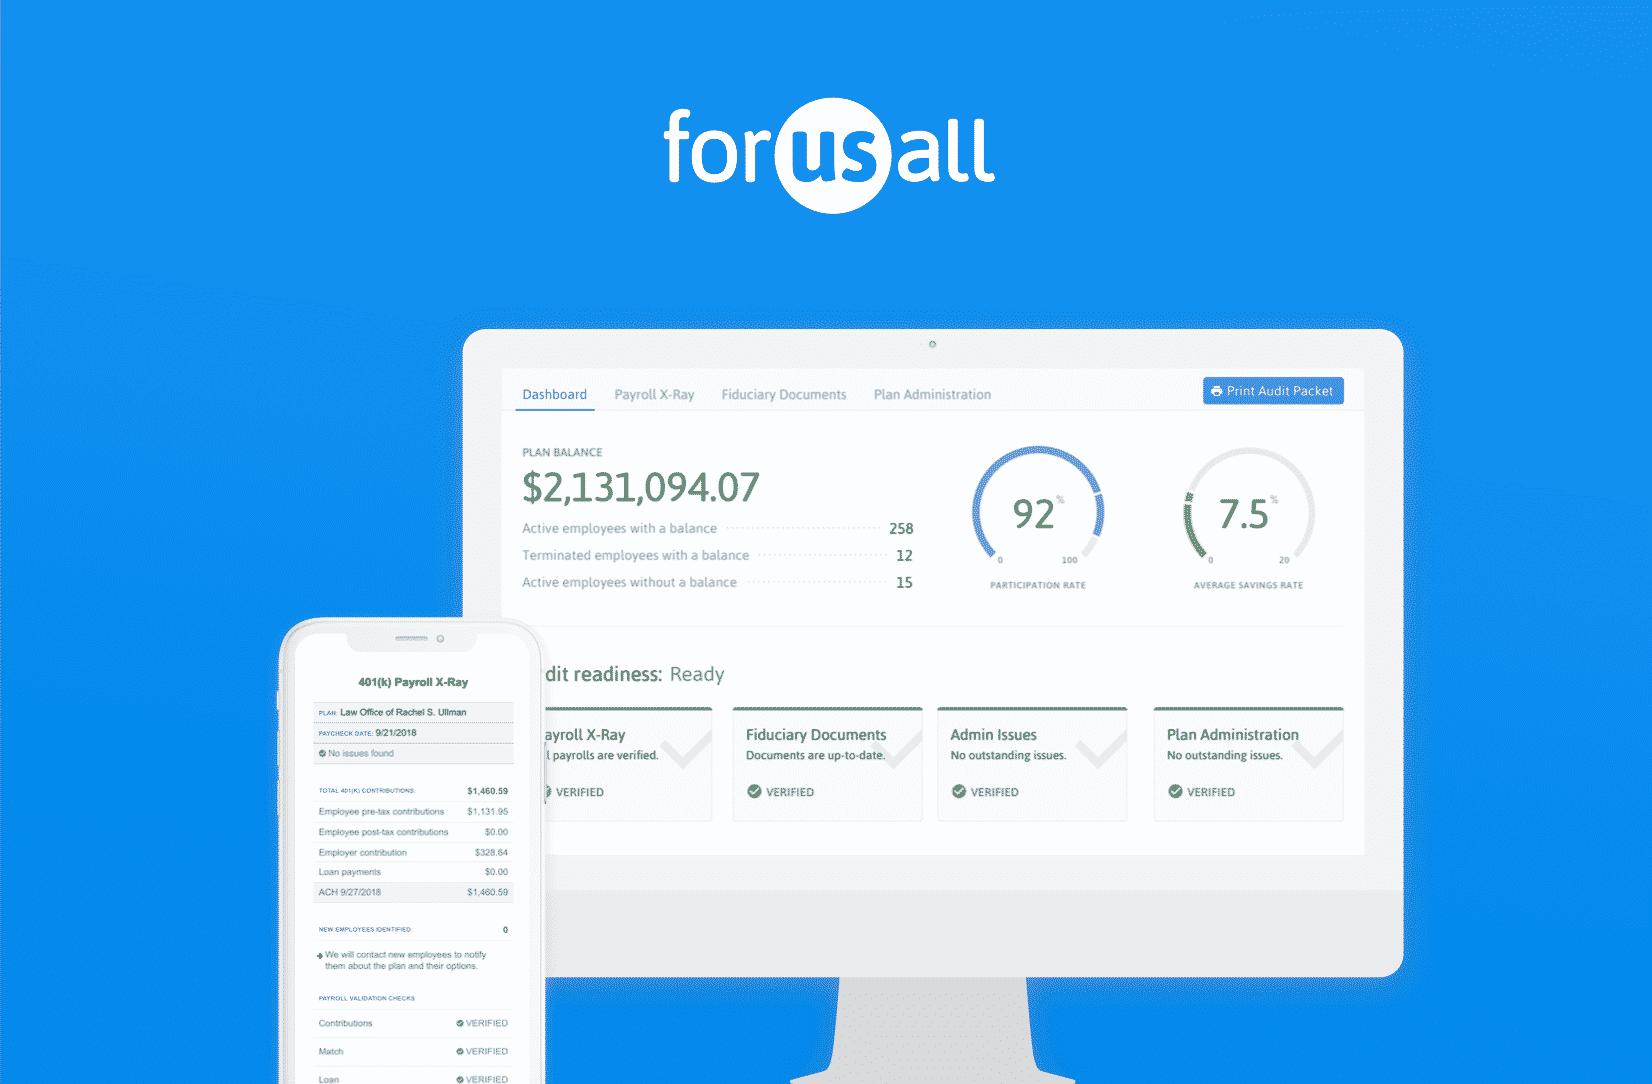 forusall dashboard